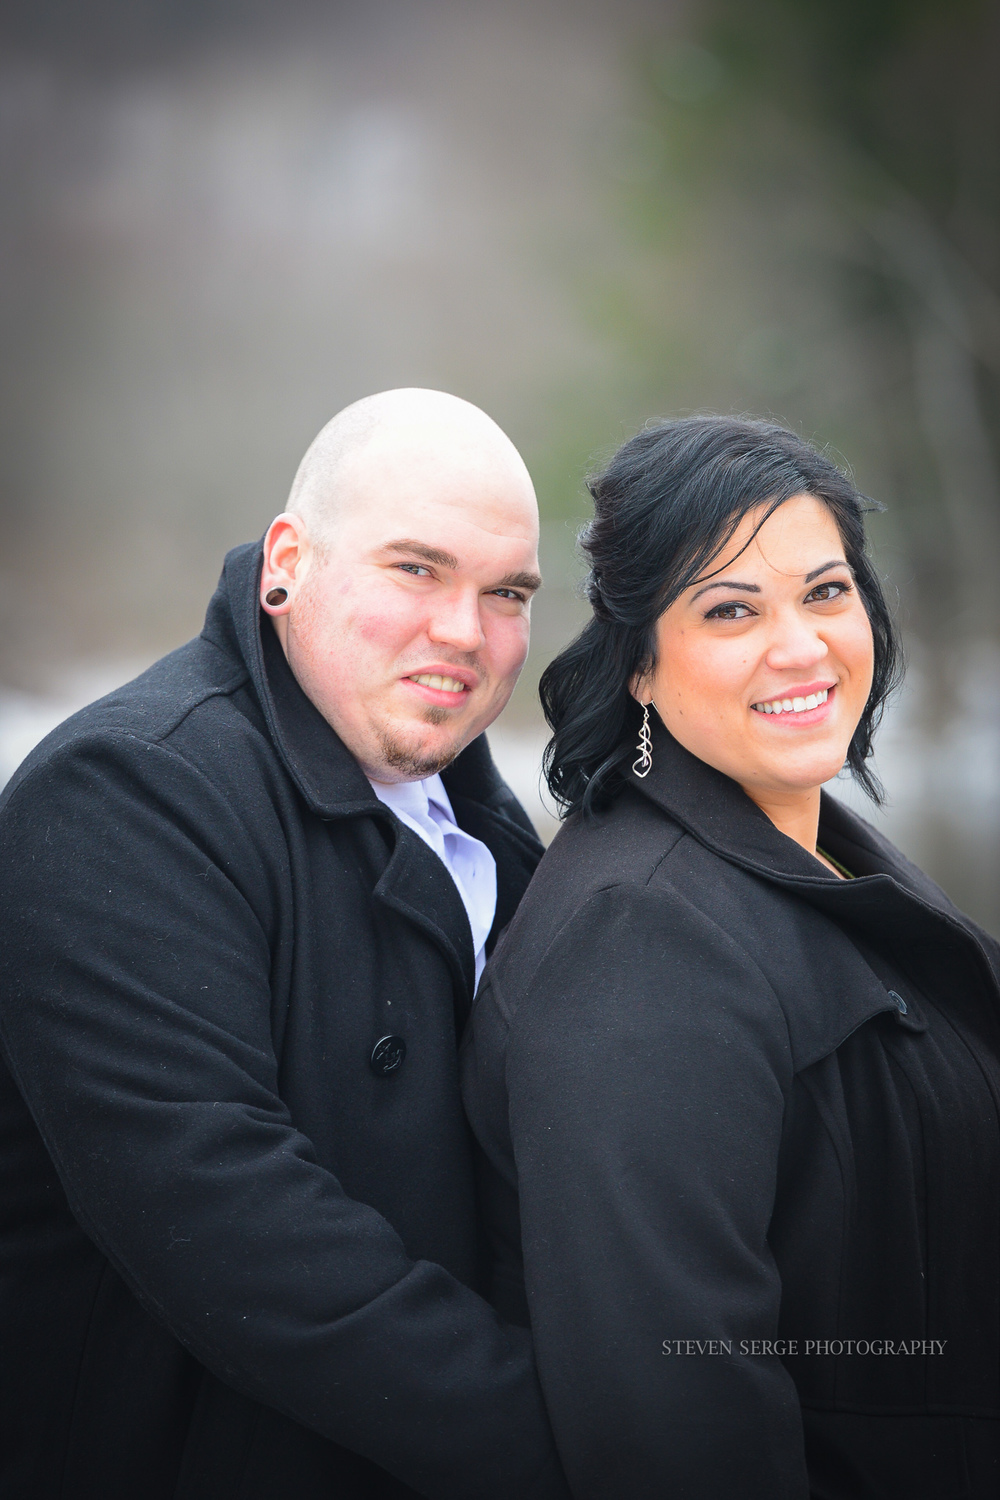 Rosa-NEPA-Wedding-Engagement-Photographer-Waverly-Clarks-Summit-Scranton-Photographer-6.jpg